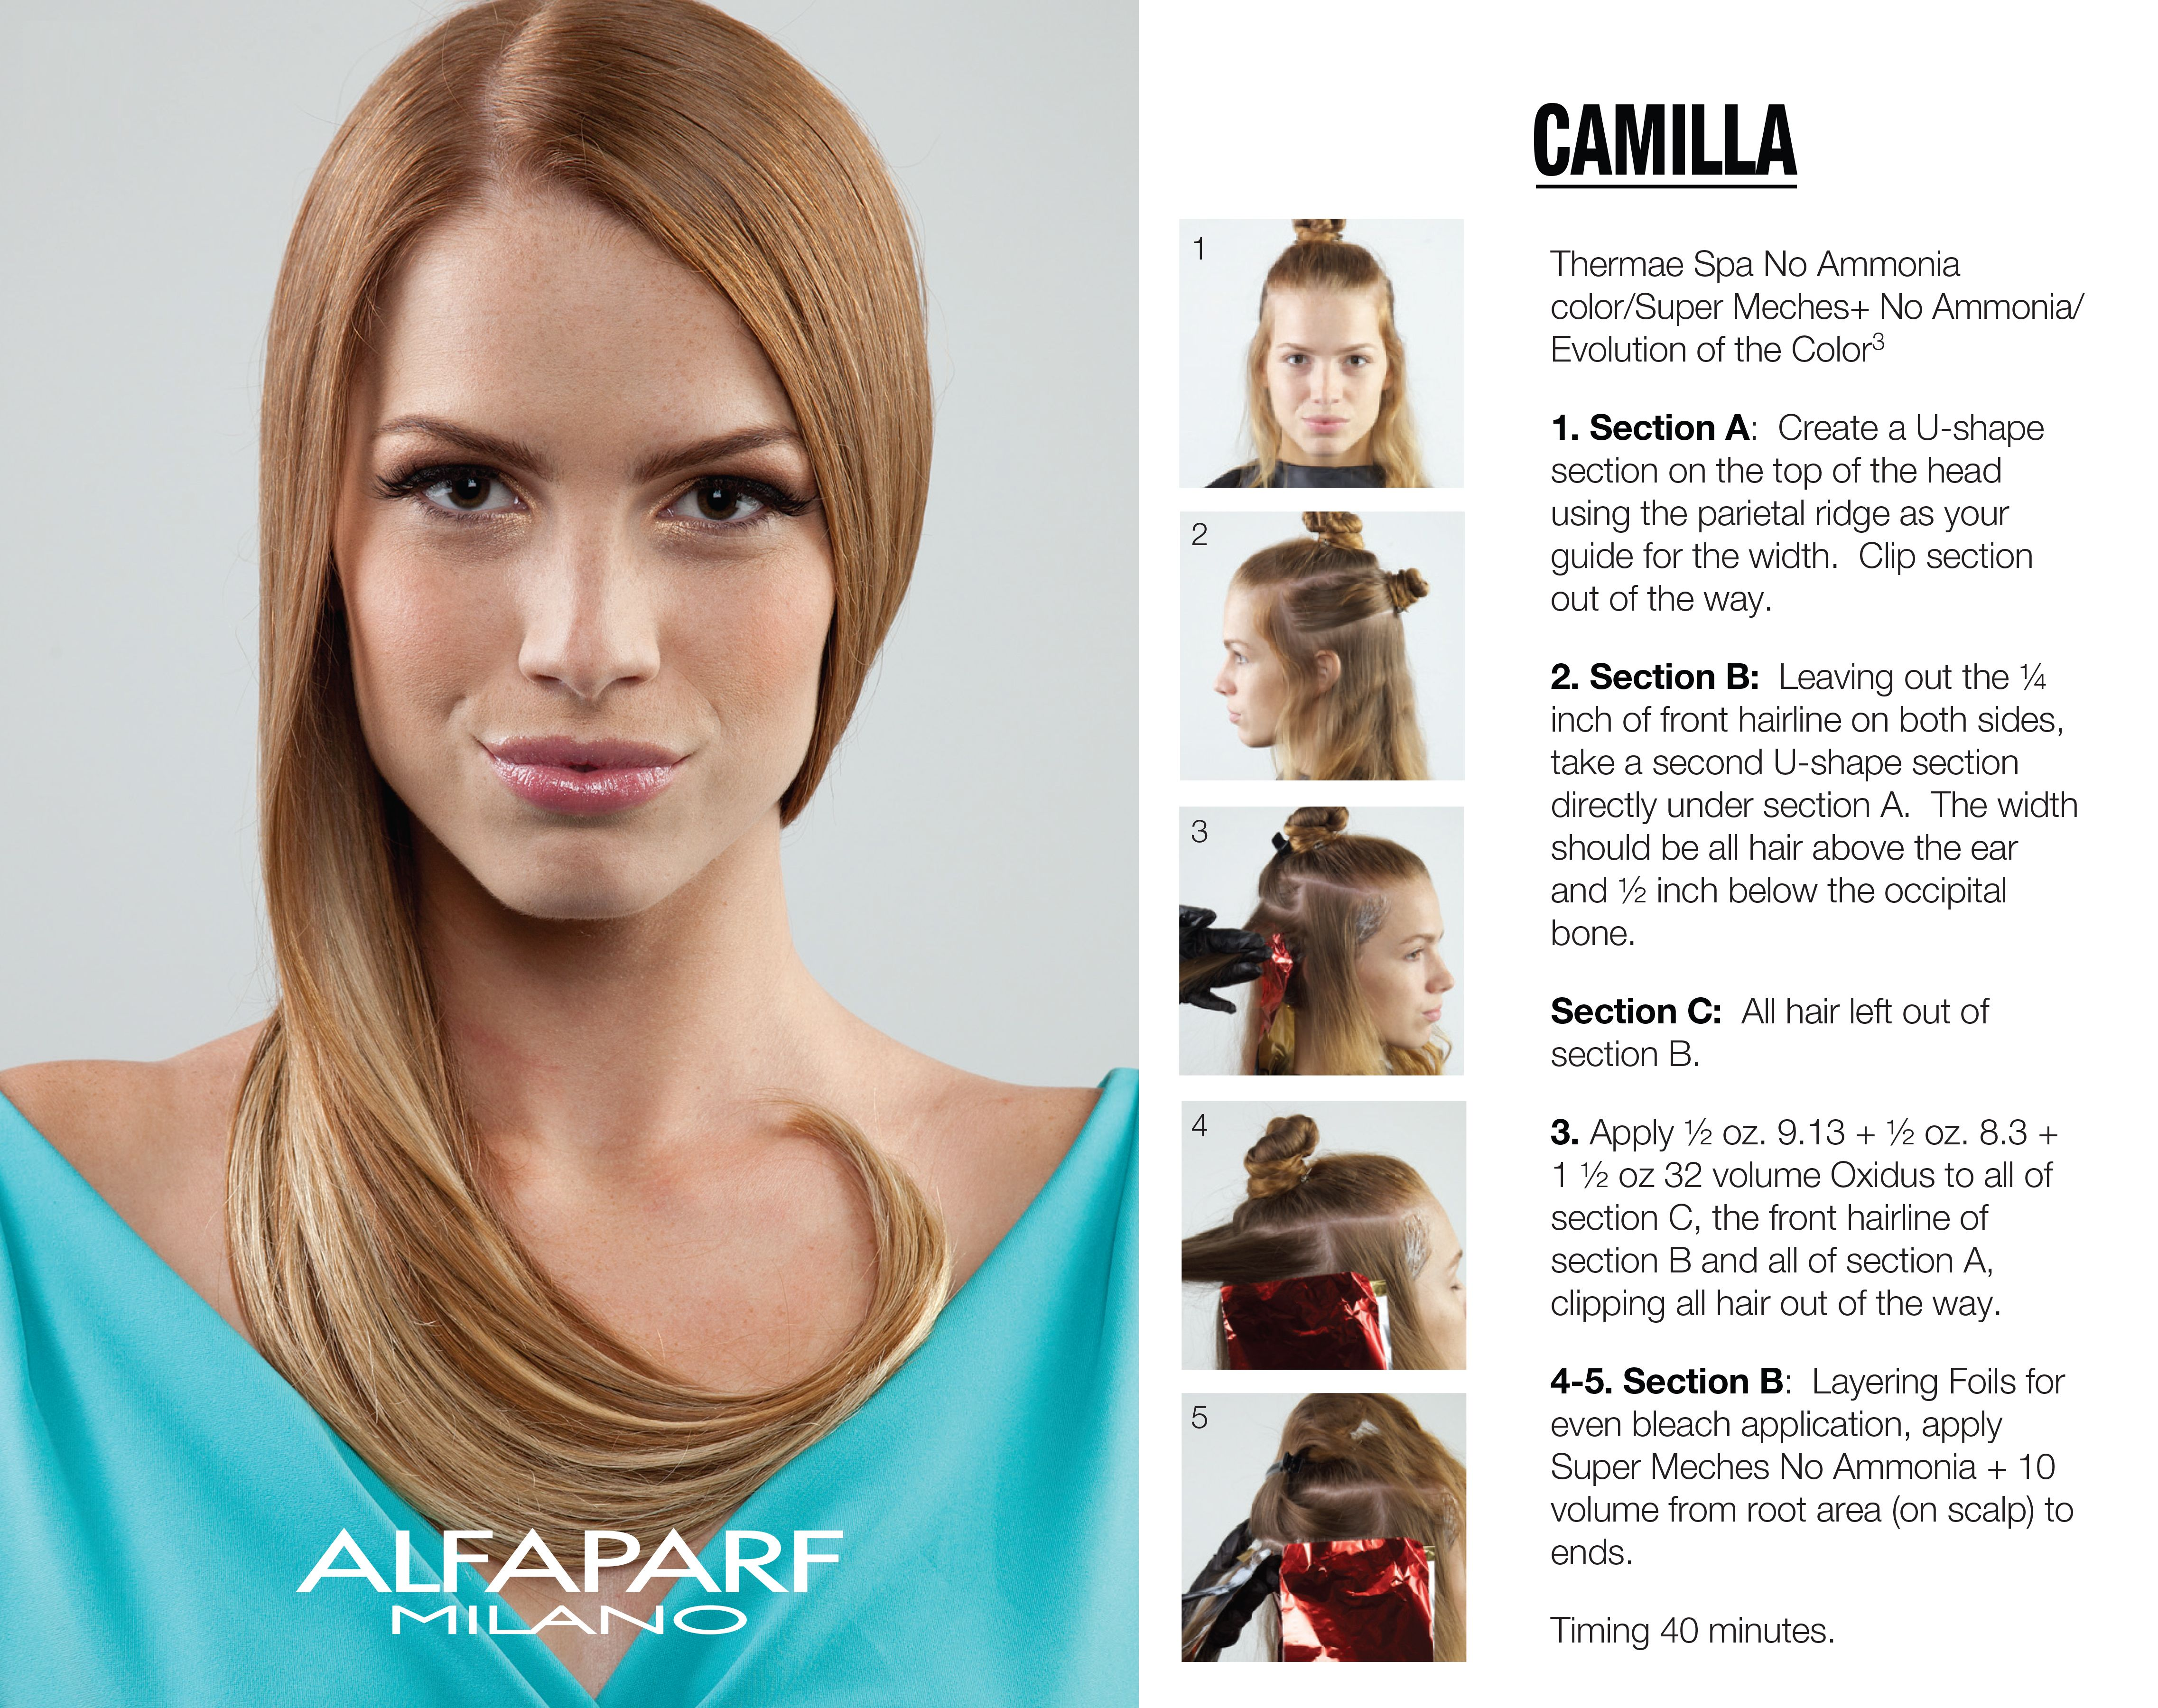 Alfaparf Milano Color Trend 1 Camilla Created By Director Of